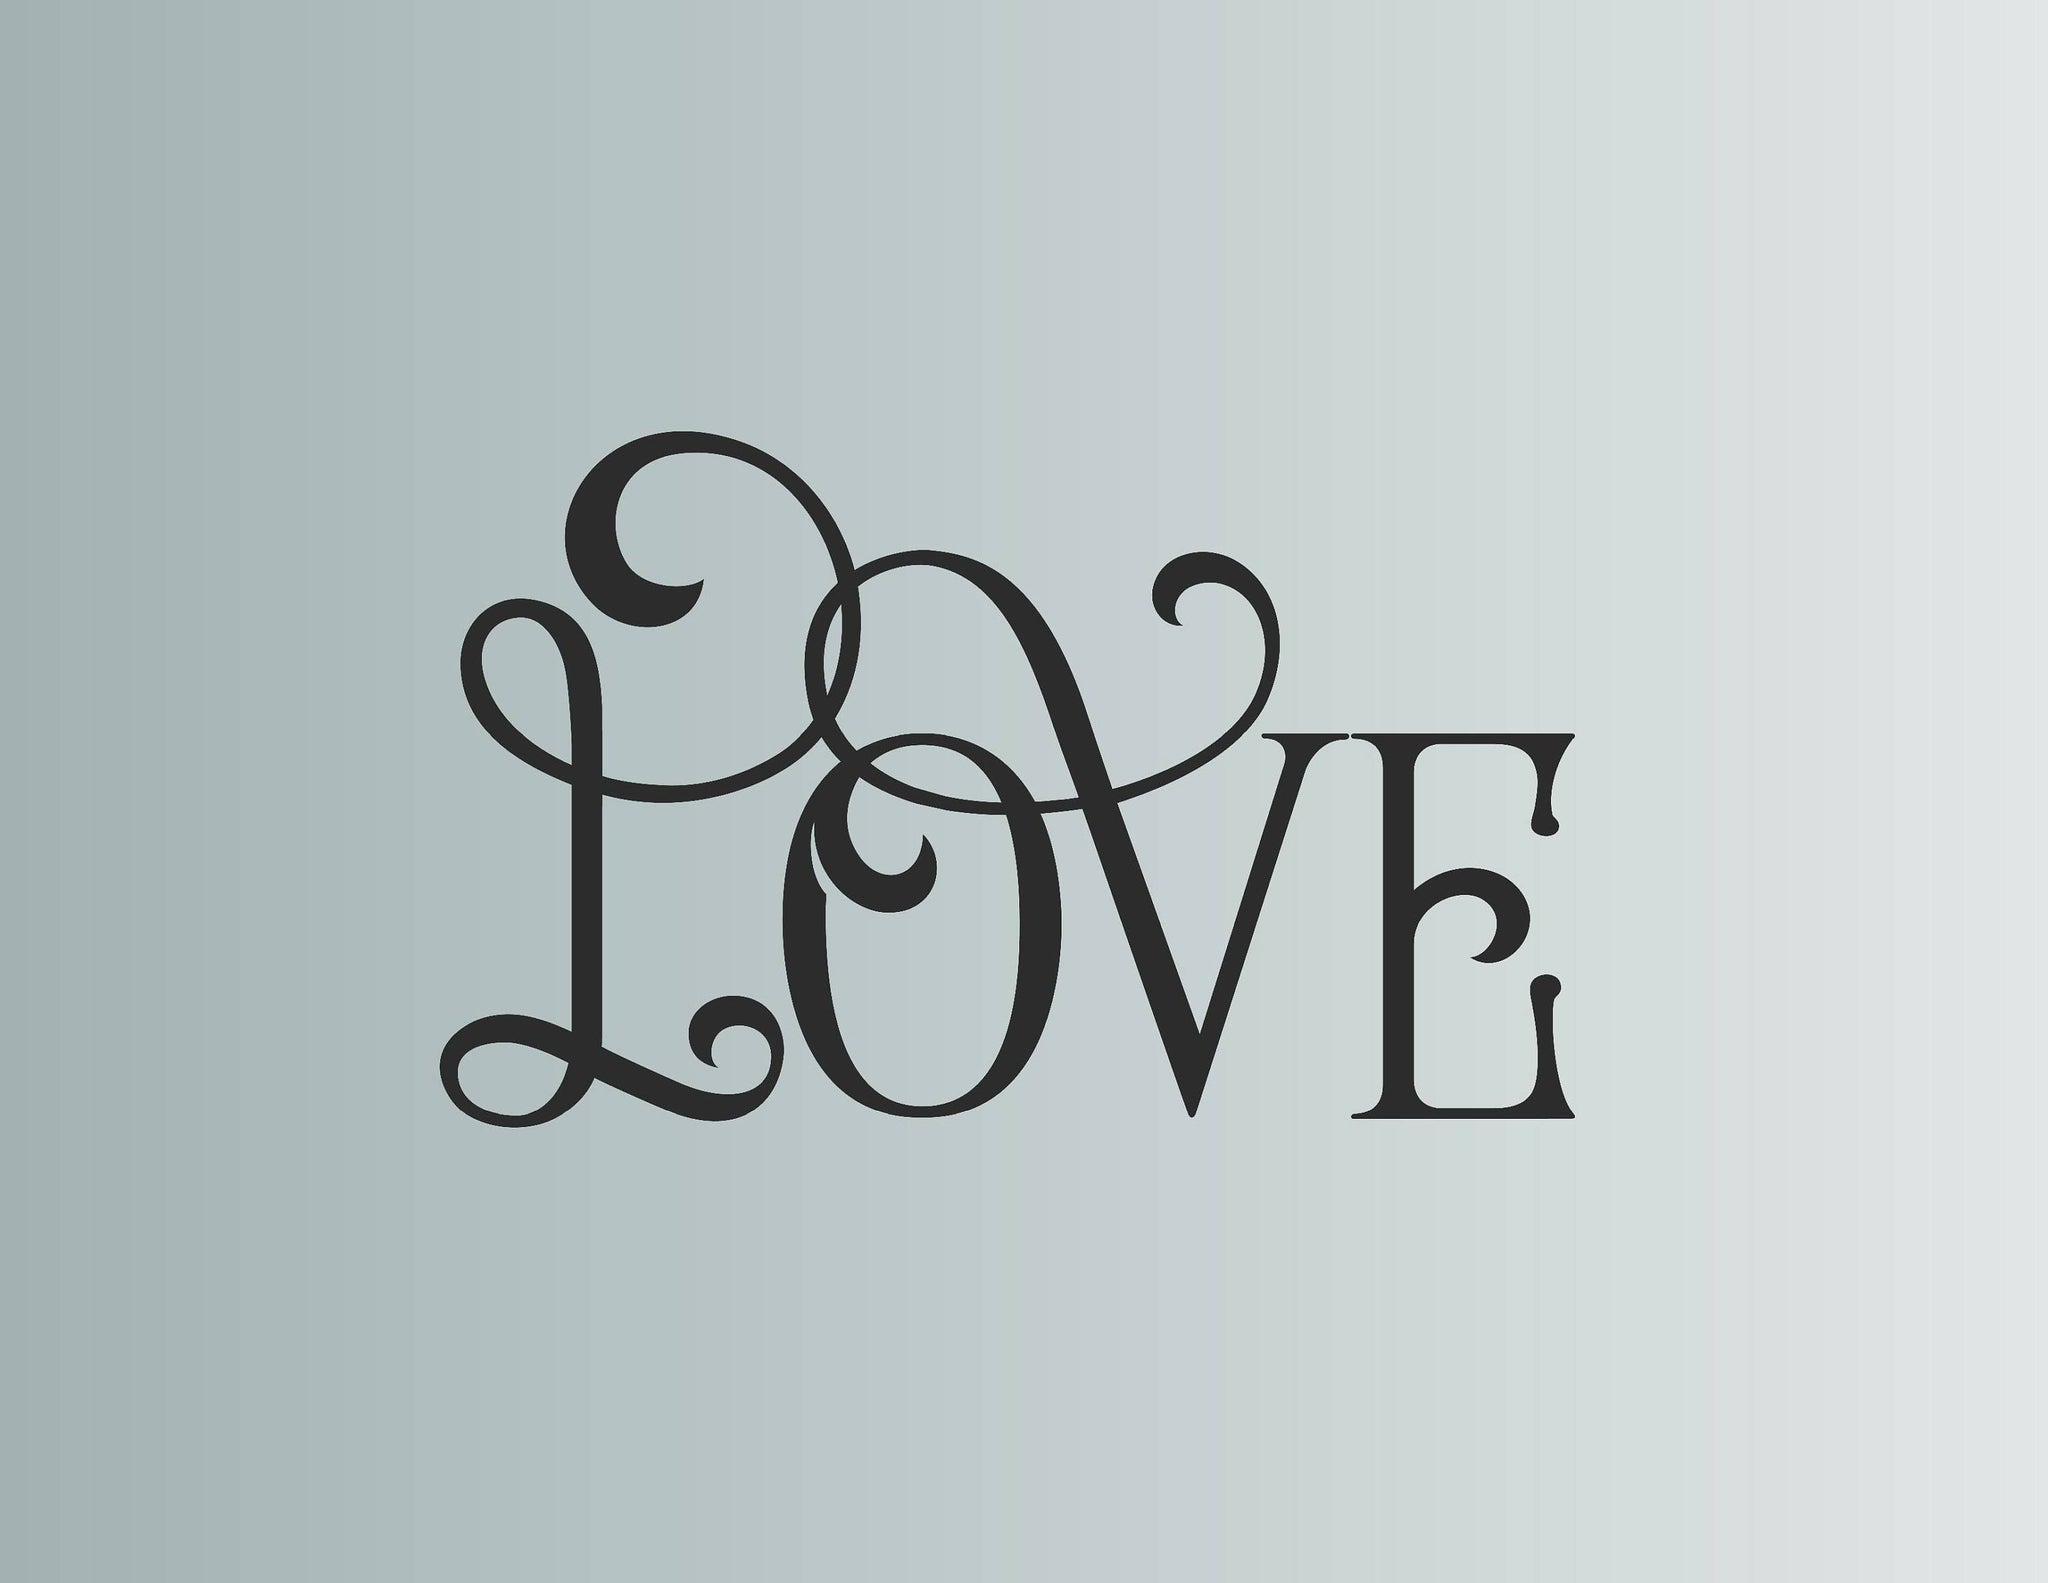 Love Wall Decal, Love Wall Sticker